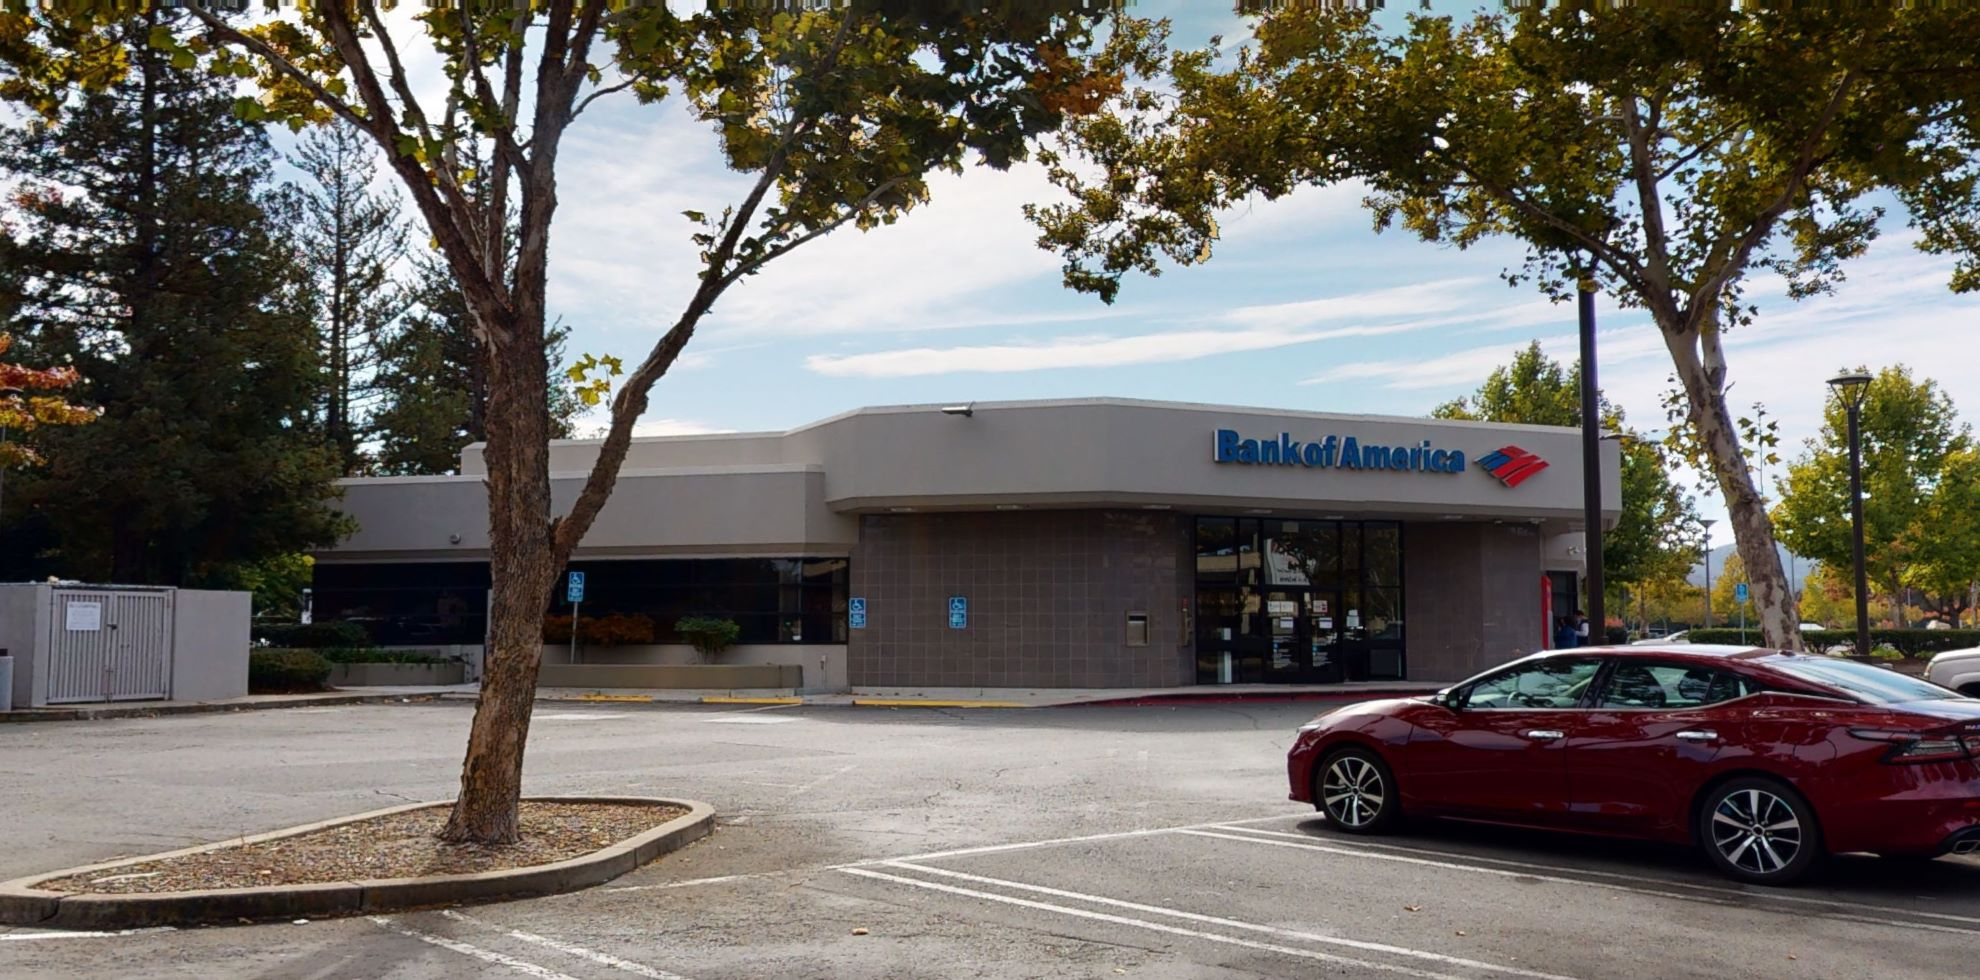 Bank of America financial center with walk-up ATM | 1053 Sunvalley Blvd, Concord, CA 94520